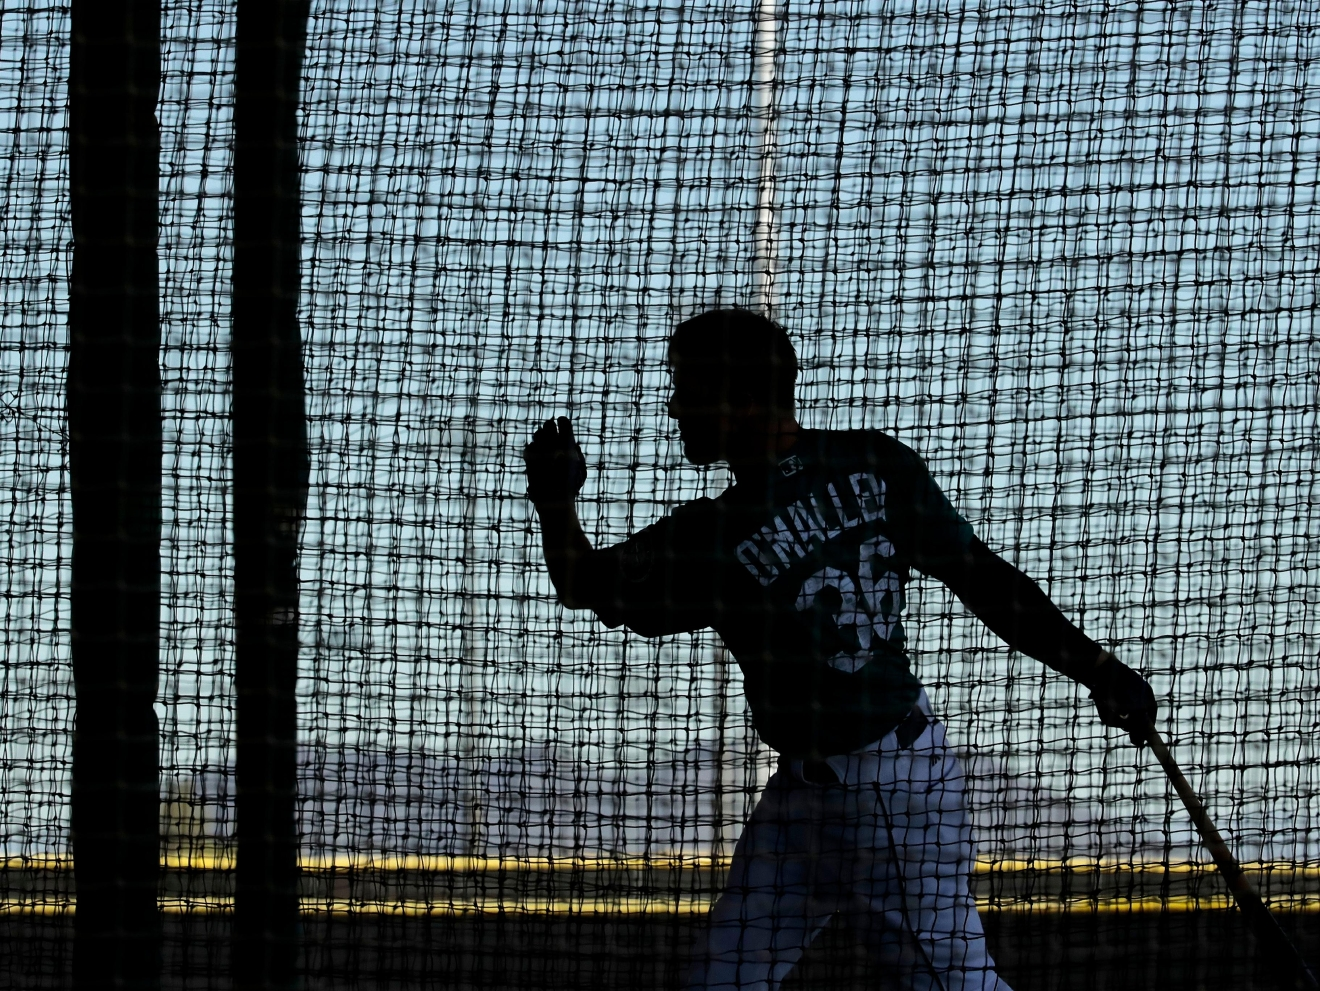 Seattle Mariners' Shawn O'Malley practices in a batting cage during spring training baseball practice, Tuesday, Feb. 21, 2017, in Peoria, Ariz. (AP Photo/Charlie Riedel)